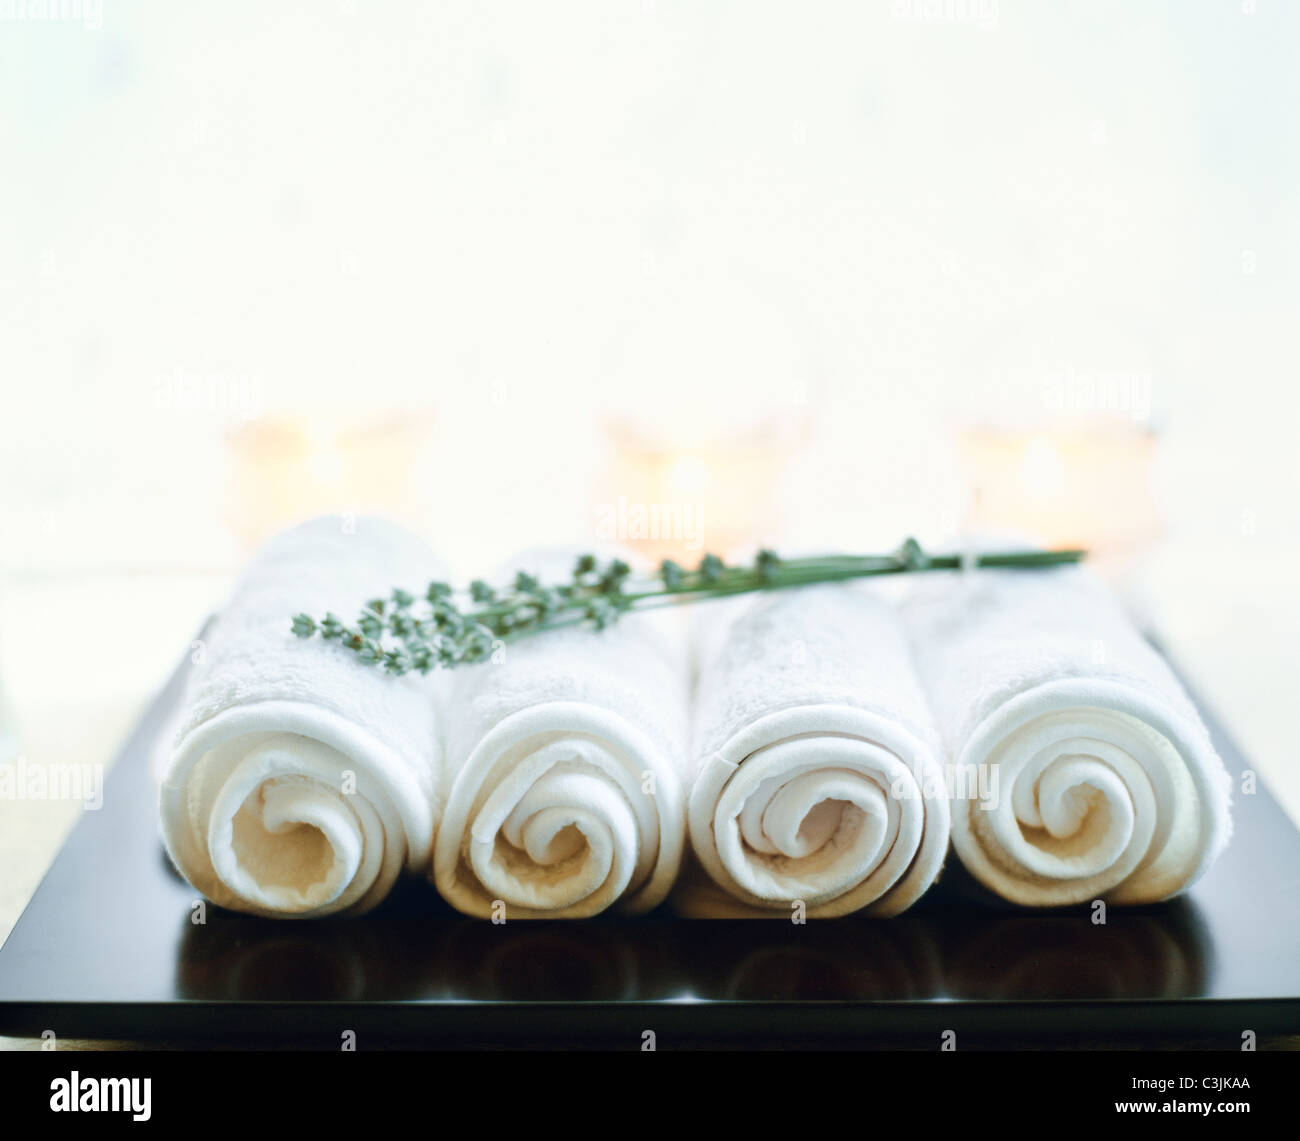 Spa Towels By Kassafina: Spa Candles Stock Photos & Spa Candles Stock Images